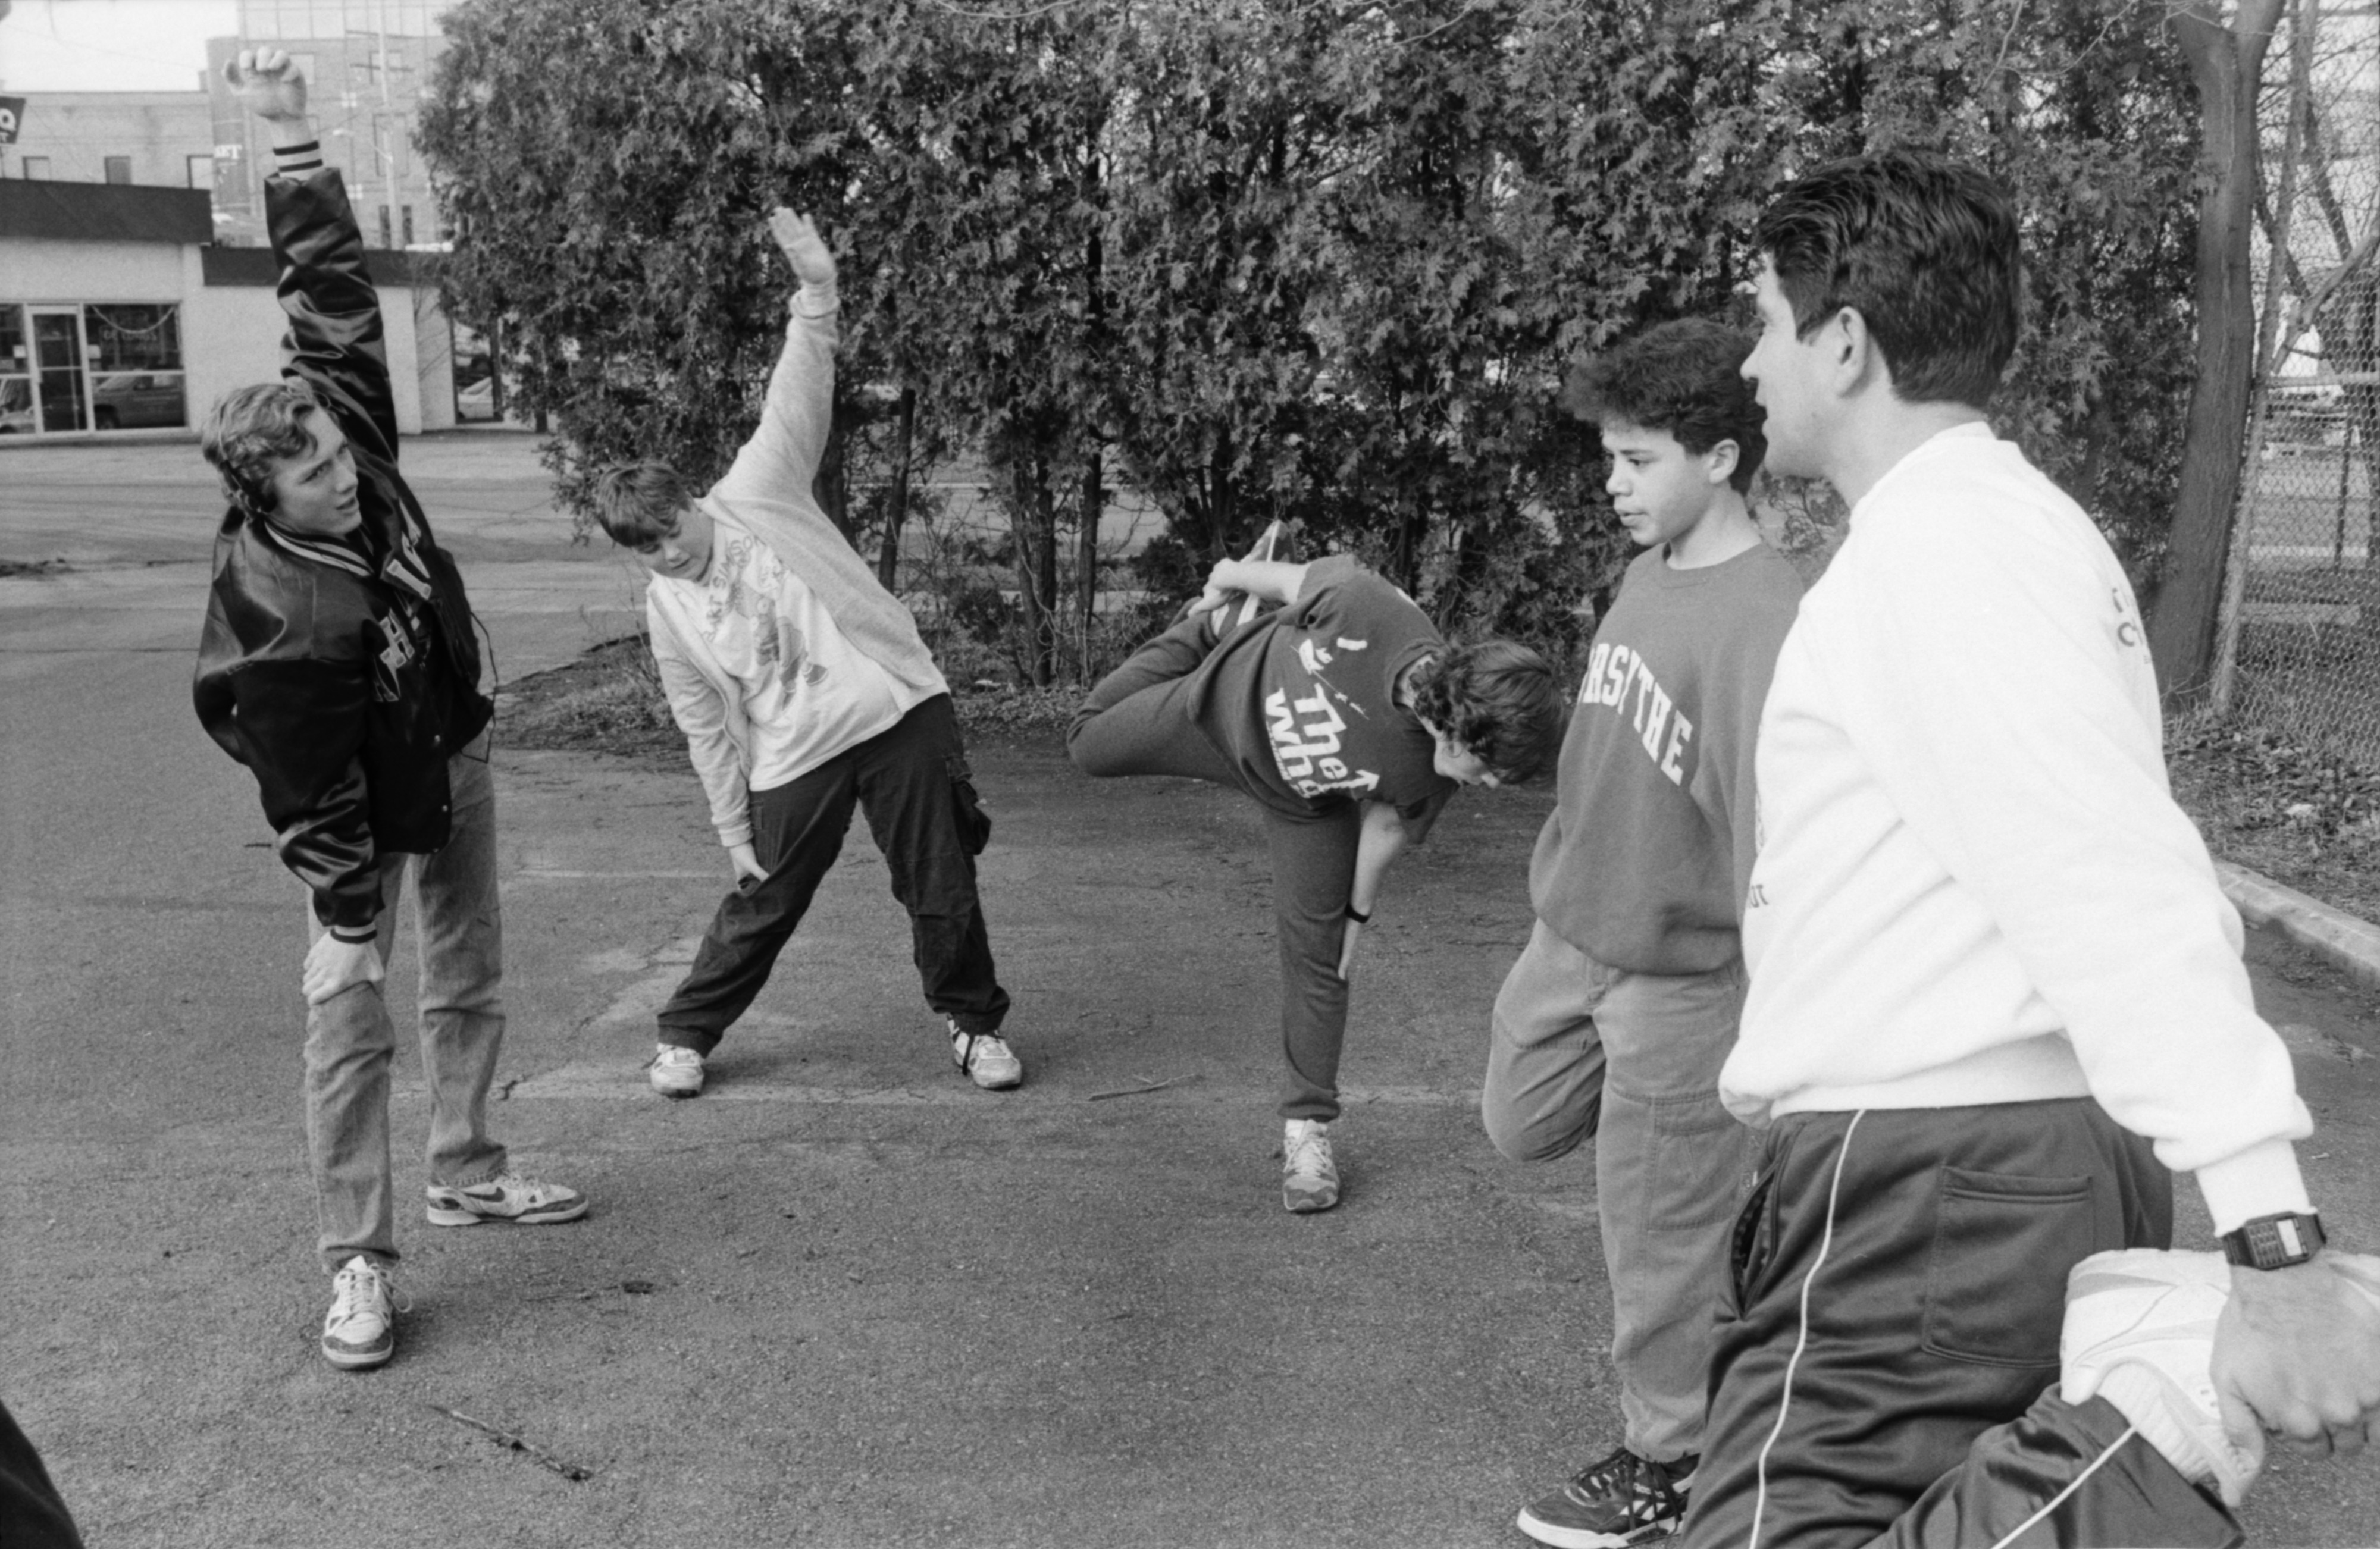 Elmo Morales and Students at Community High, December 1990 image